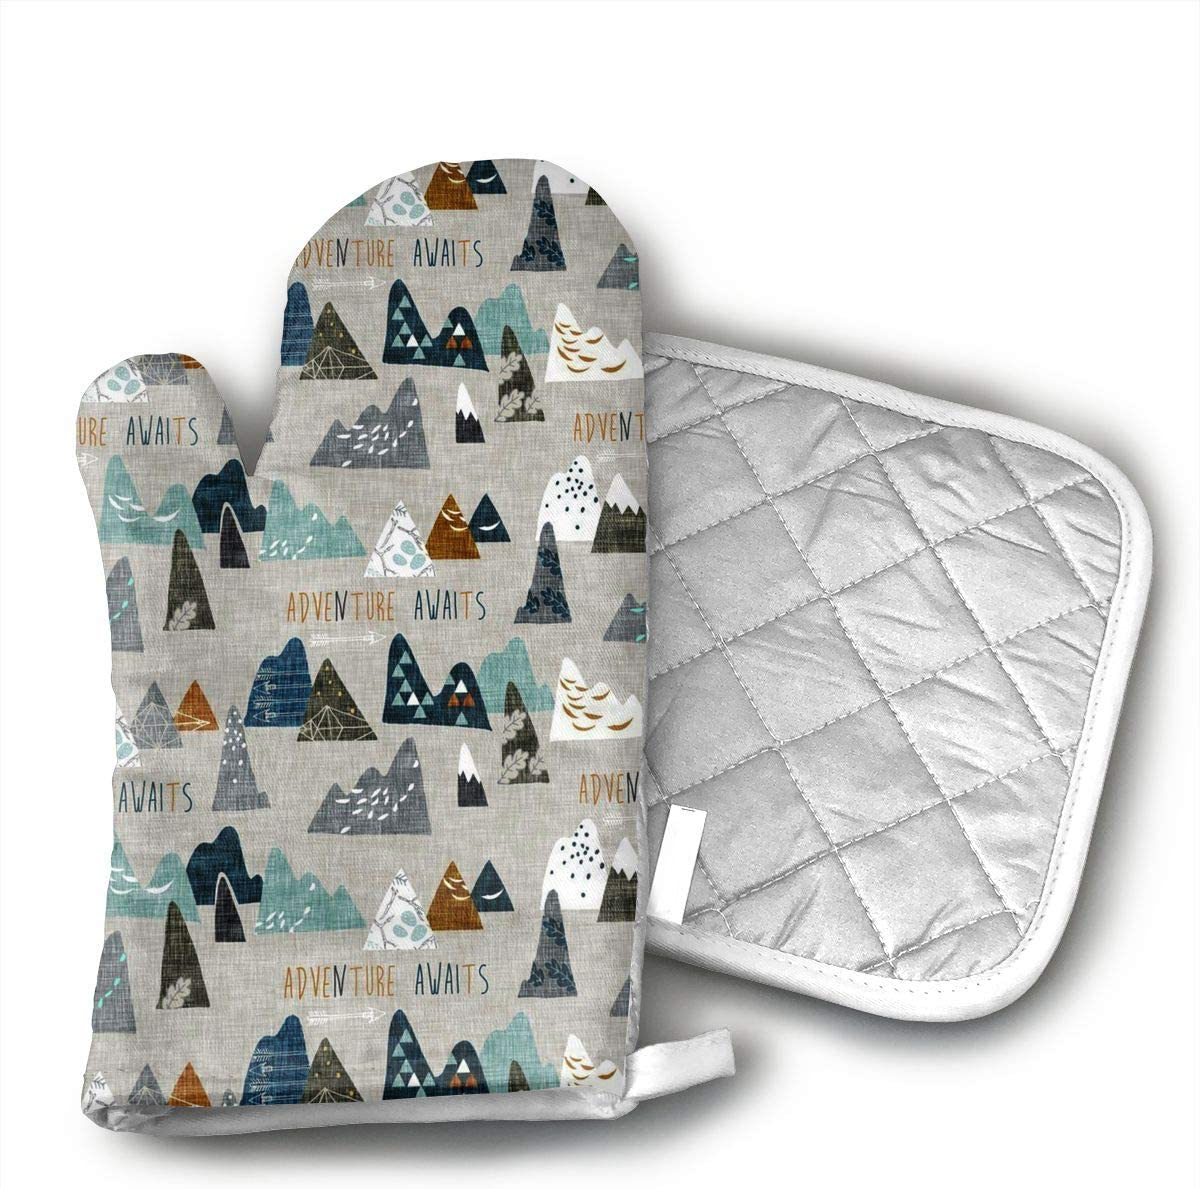 KEIOO Adventure Awaits (Earth) Nouveau Bohemian Oven Mitts and Potholders Heat Resistant Set of 2 Kitchen Set Non-Slip Grip Oven Gloves BBQ Cooking Baking Grilling